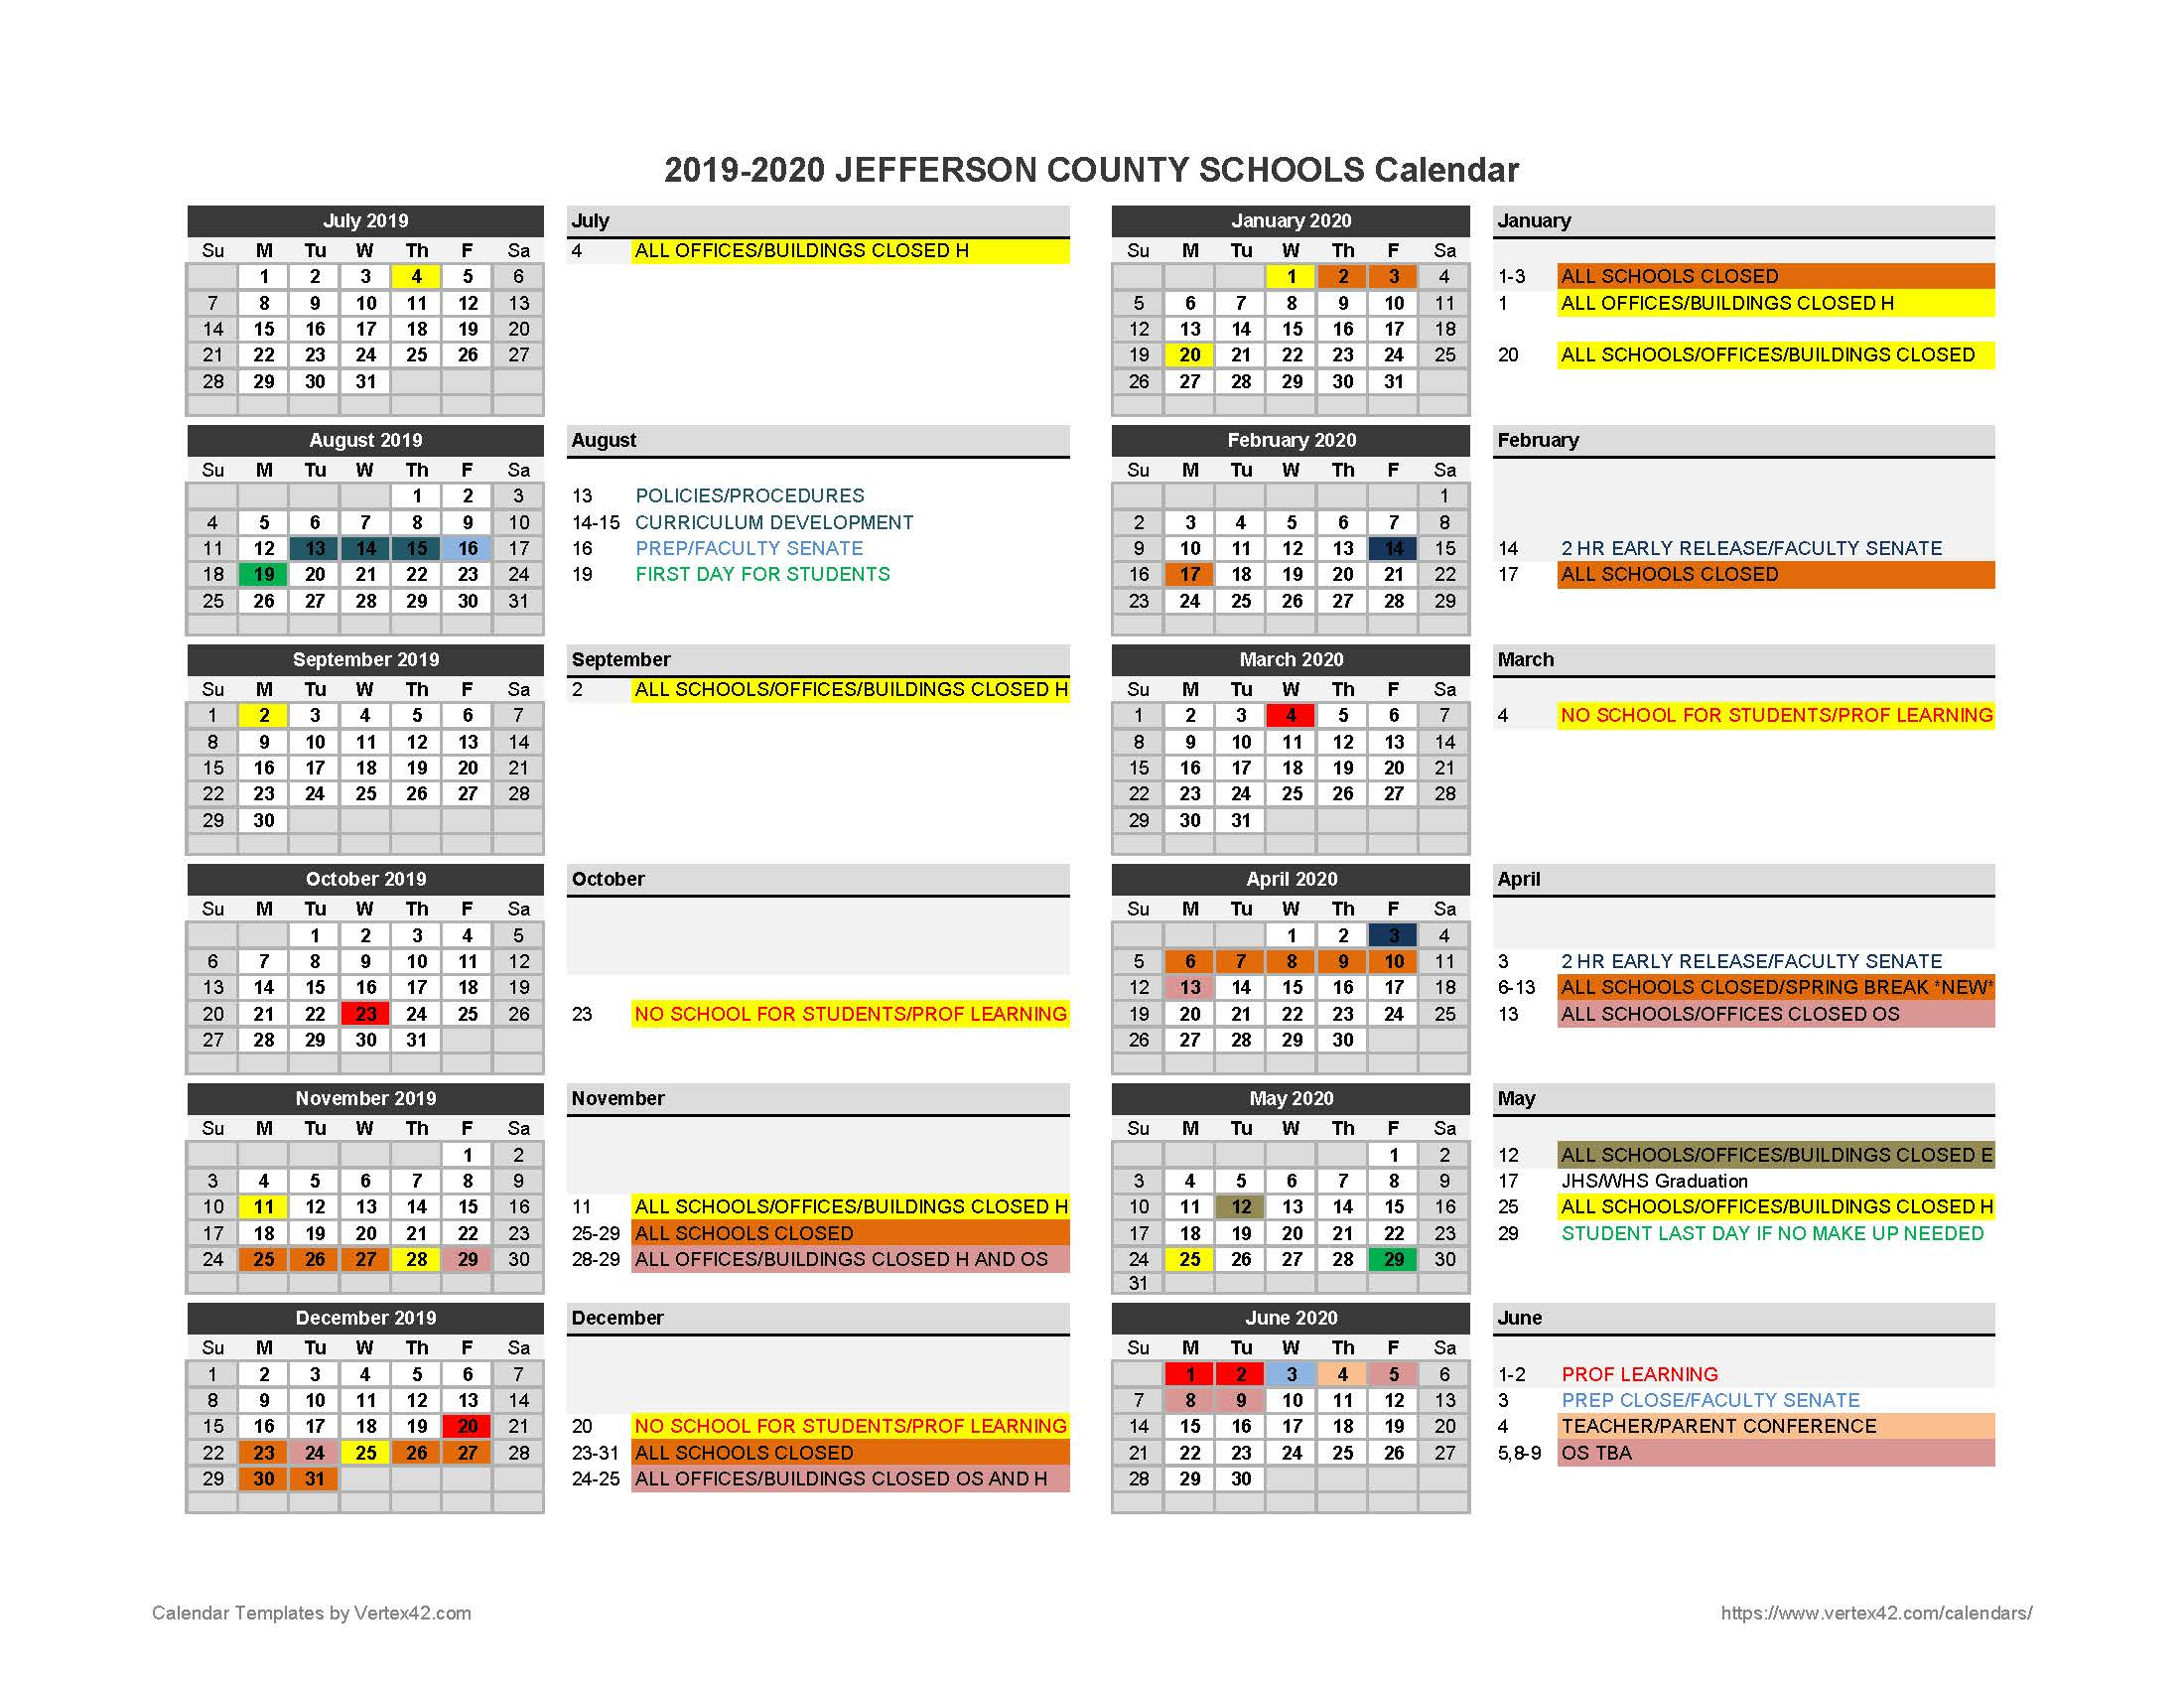 2019-2020 Parent Calendar - Jefferson County Schools throughout Jefferson County Colorado Schools Calendar